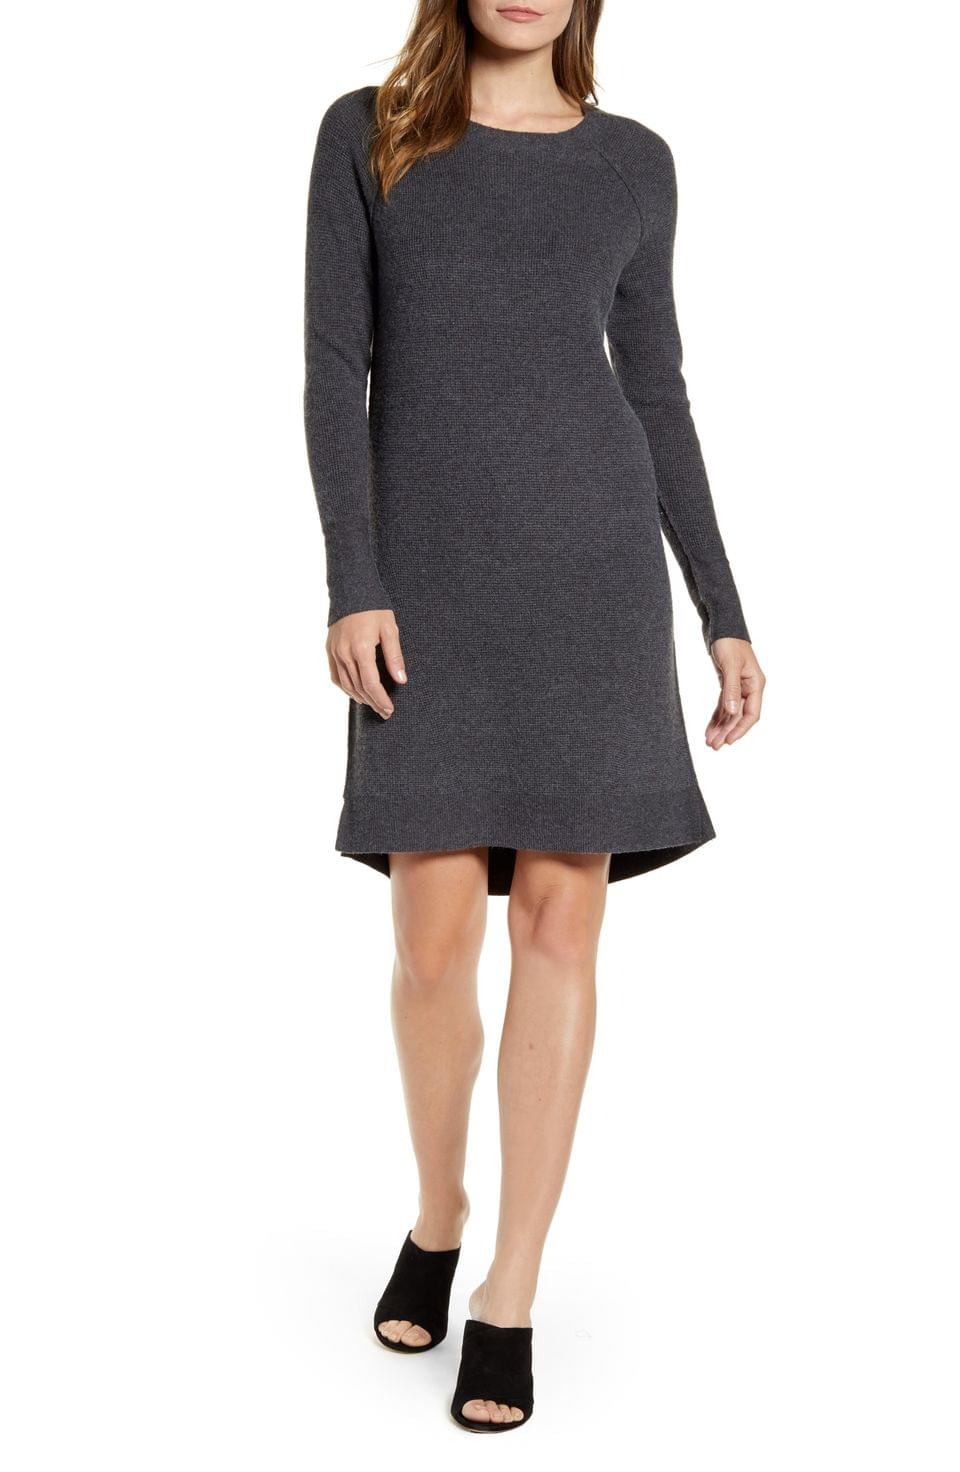 Women's Caslon Long Sleeve Thermal Stitch Sweater Dress